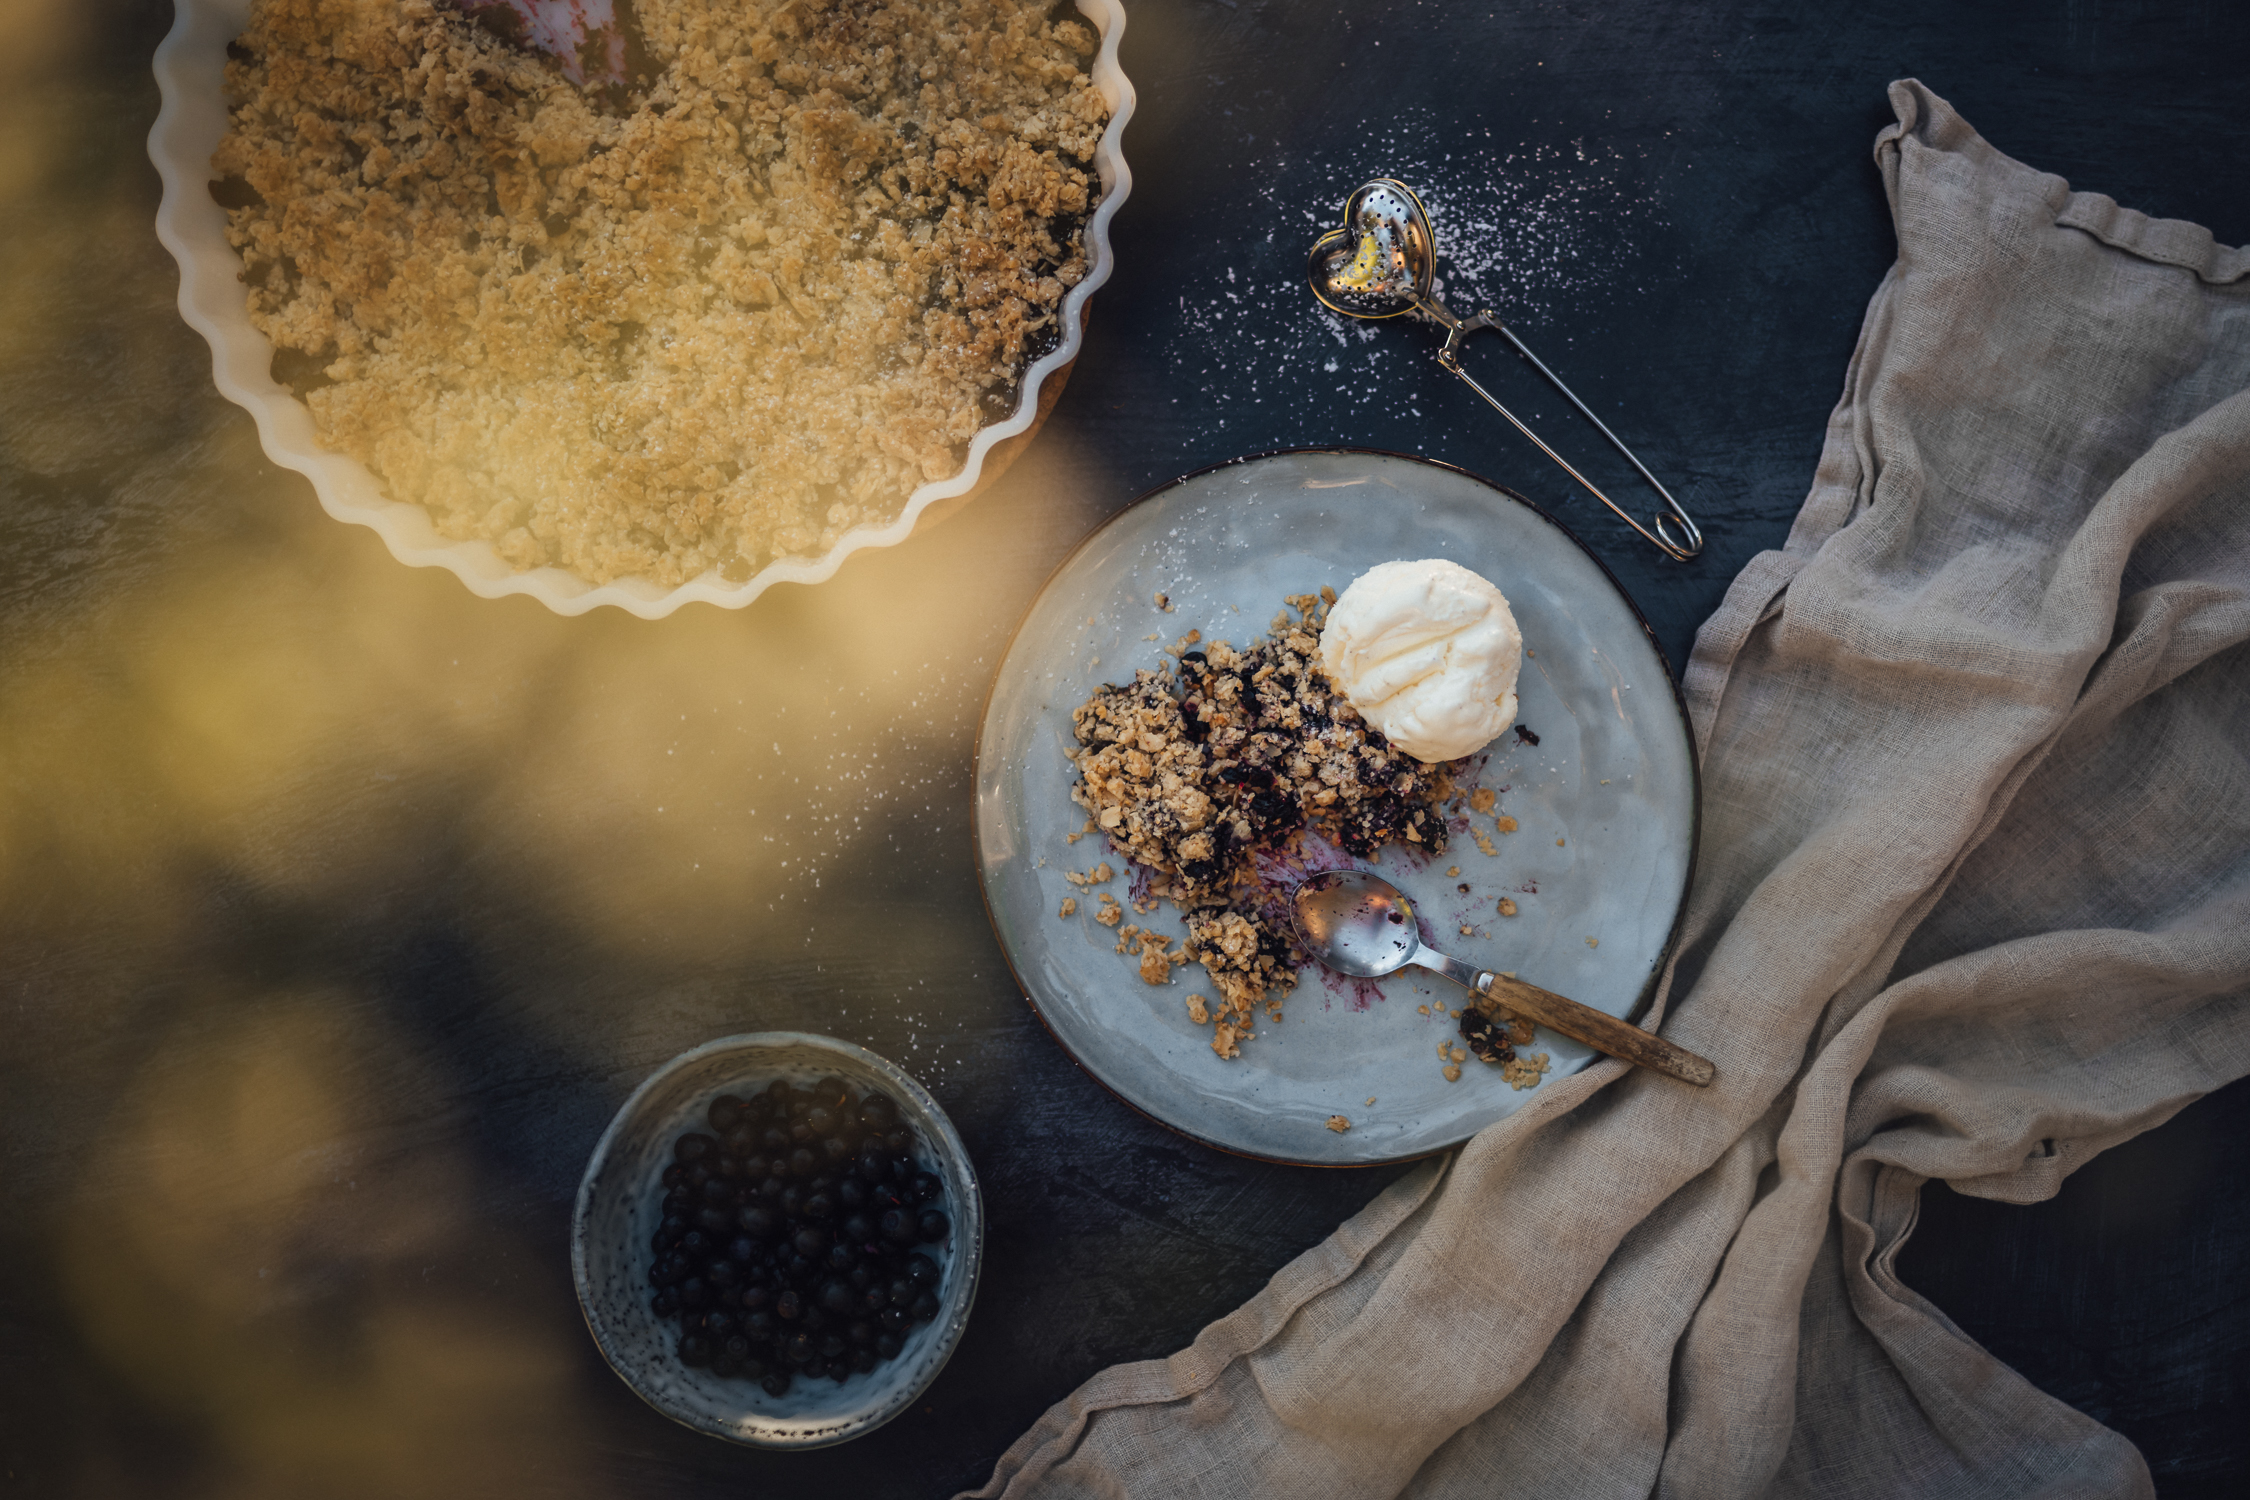 Vegan Blueberry Crumble Pie with Ice Cream